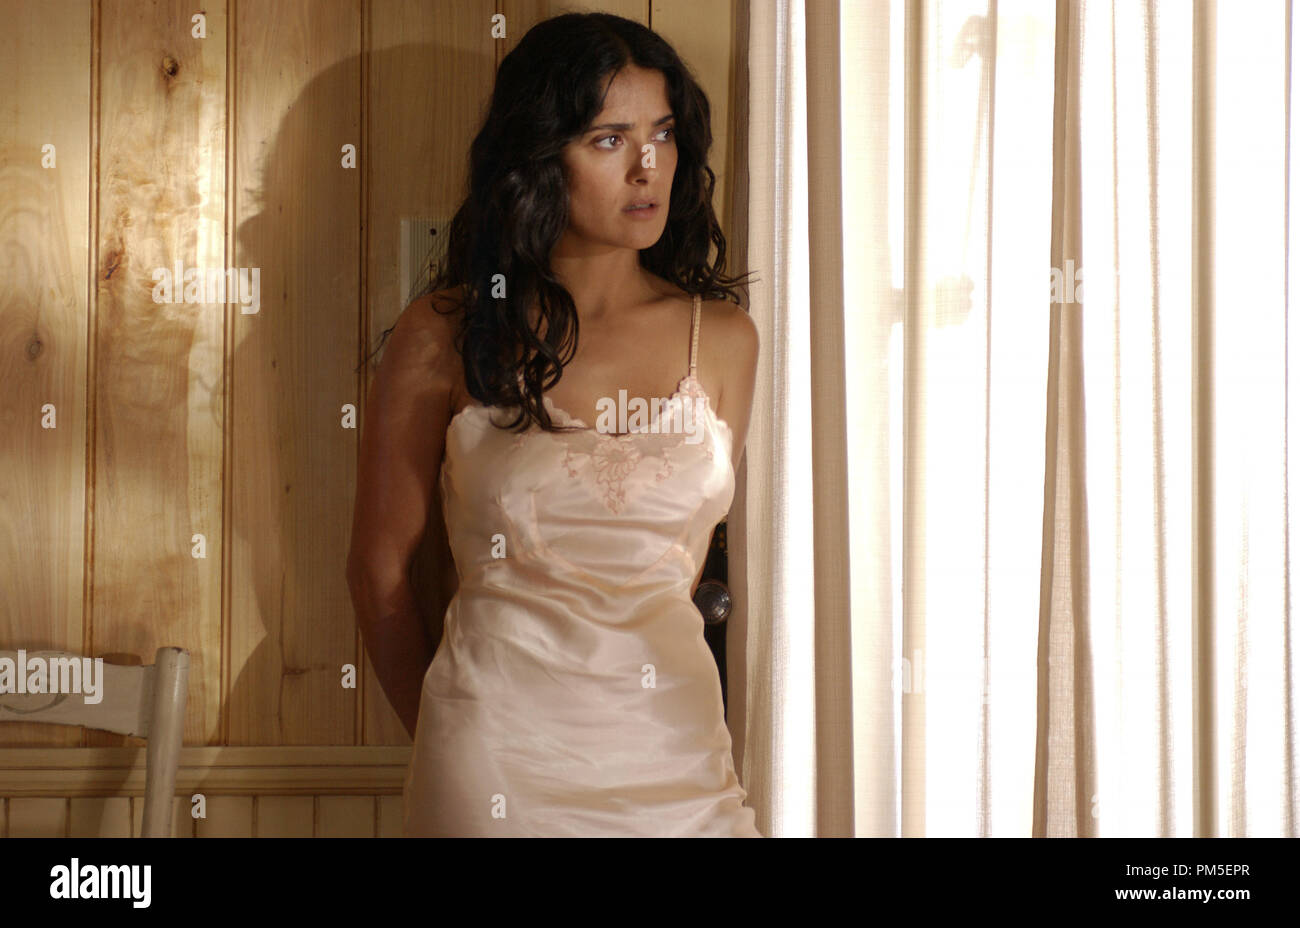 Film Still / Publicity Still from 'Ask the Dust' Salma Hayek © 2006 Paramount Pictures Photo Credit: David Bloomer  File Reference # 307371014THA  For Editorial Use Only -  All Rights Reserved - Stock Image